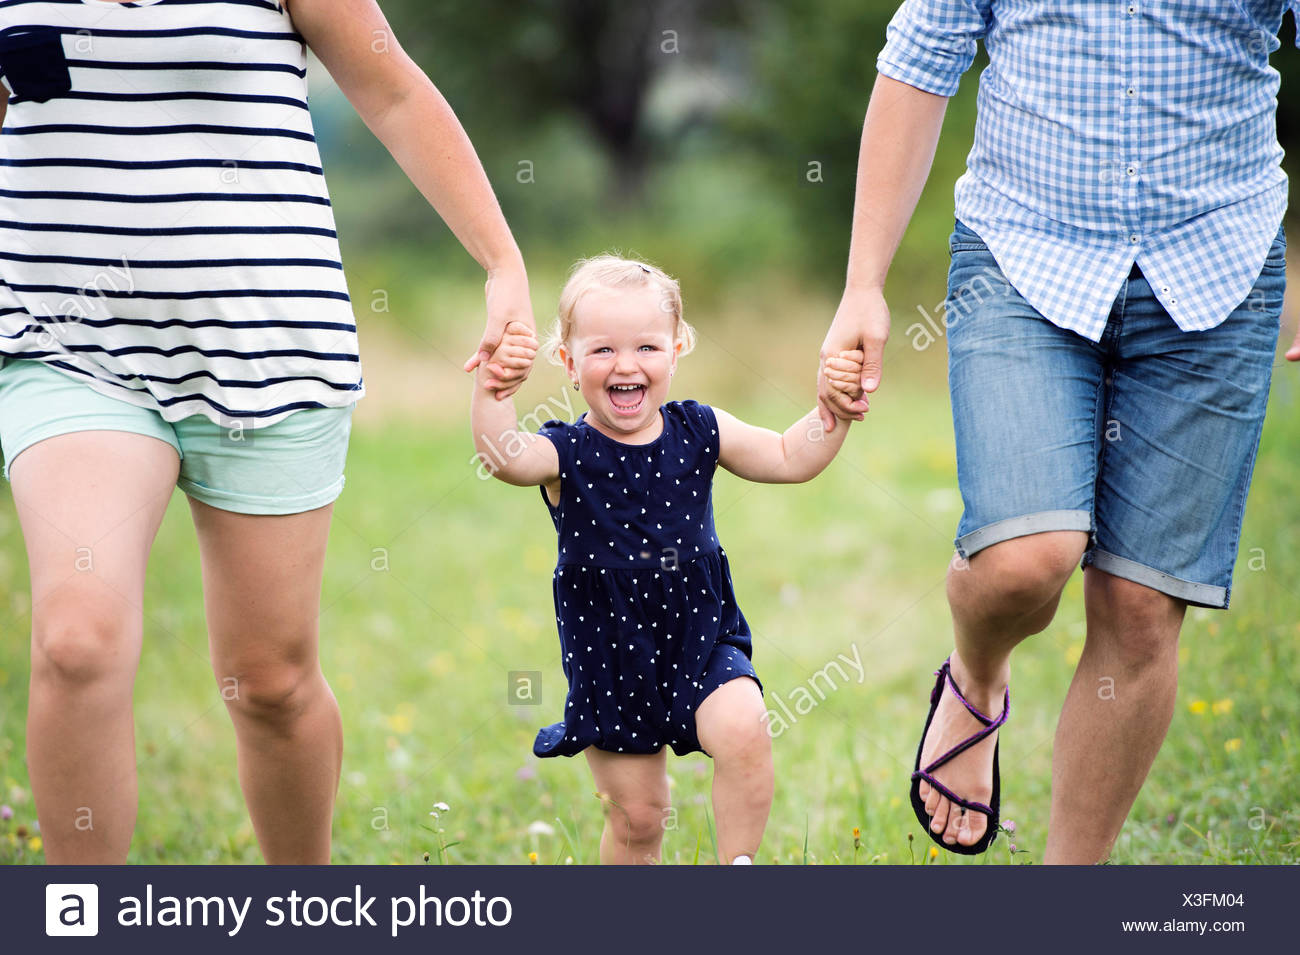 Laughing toddler girl holding hands of parents while running - Stock Image